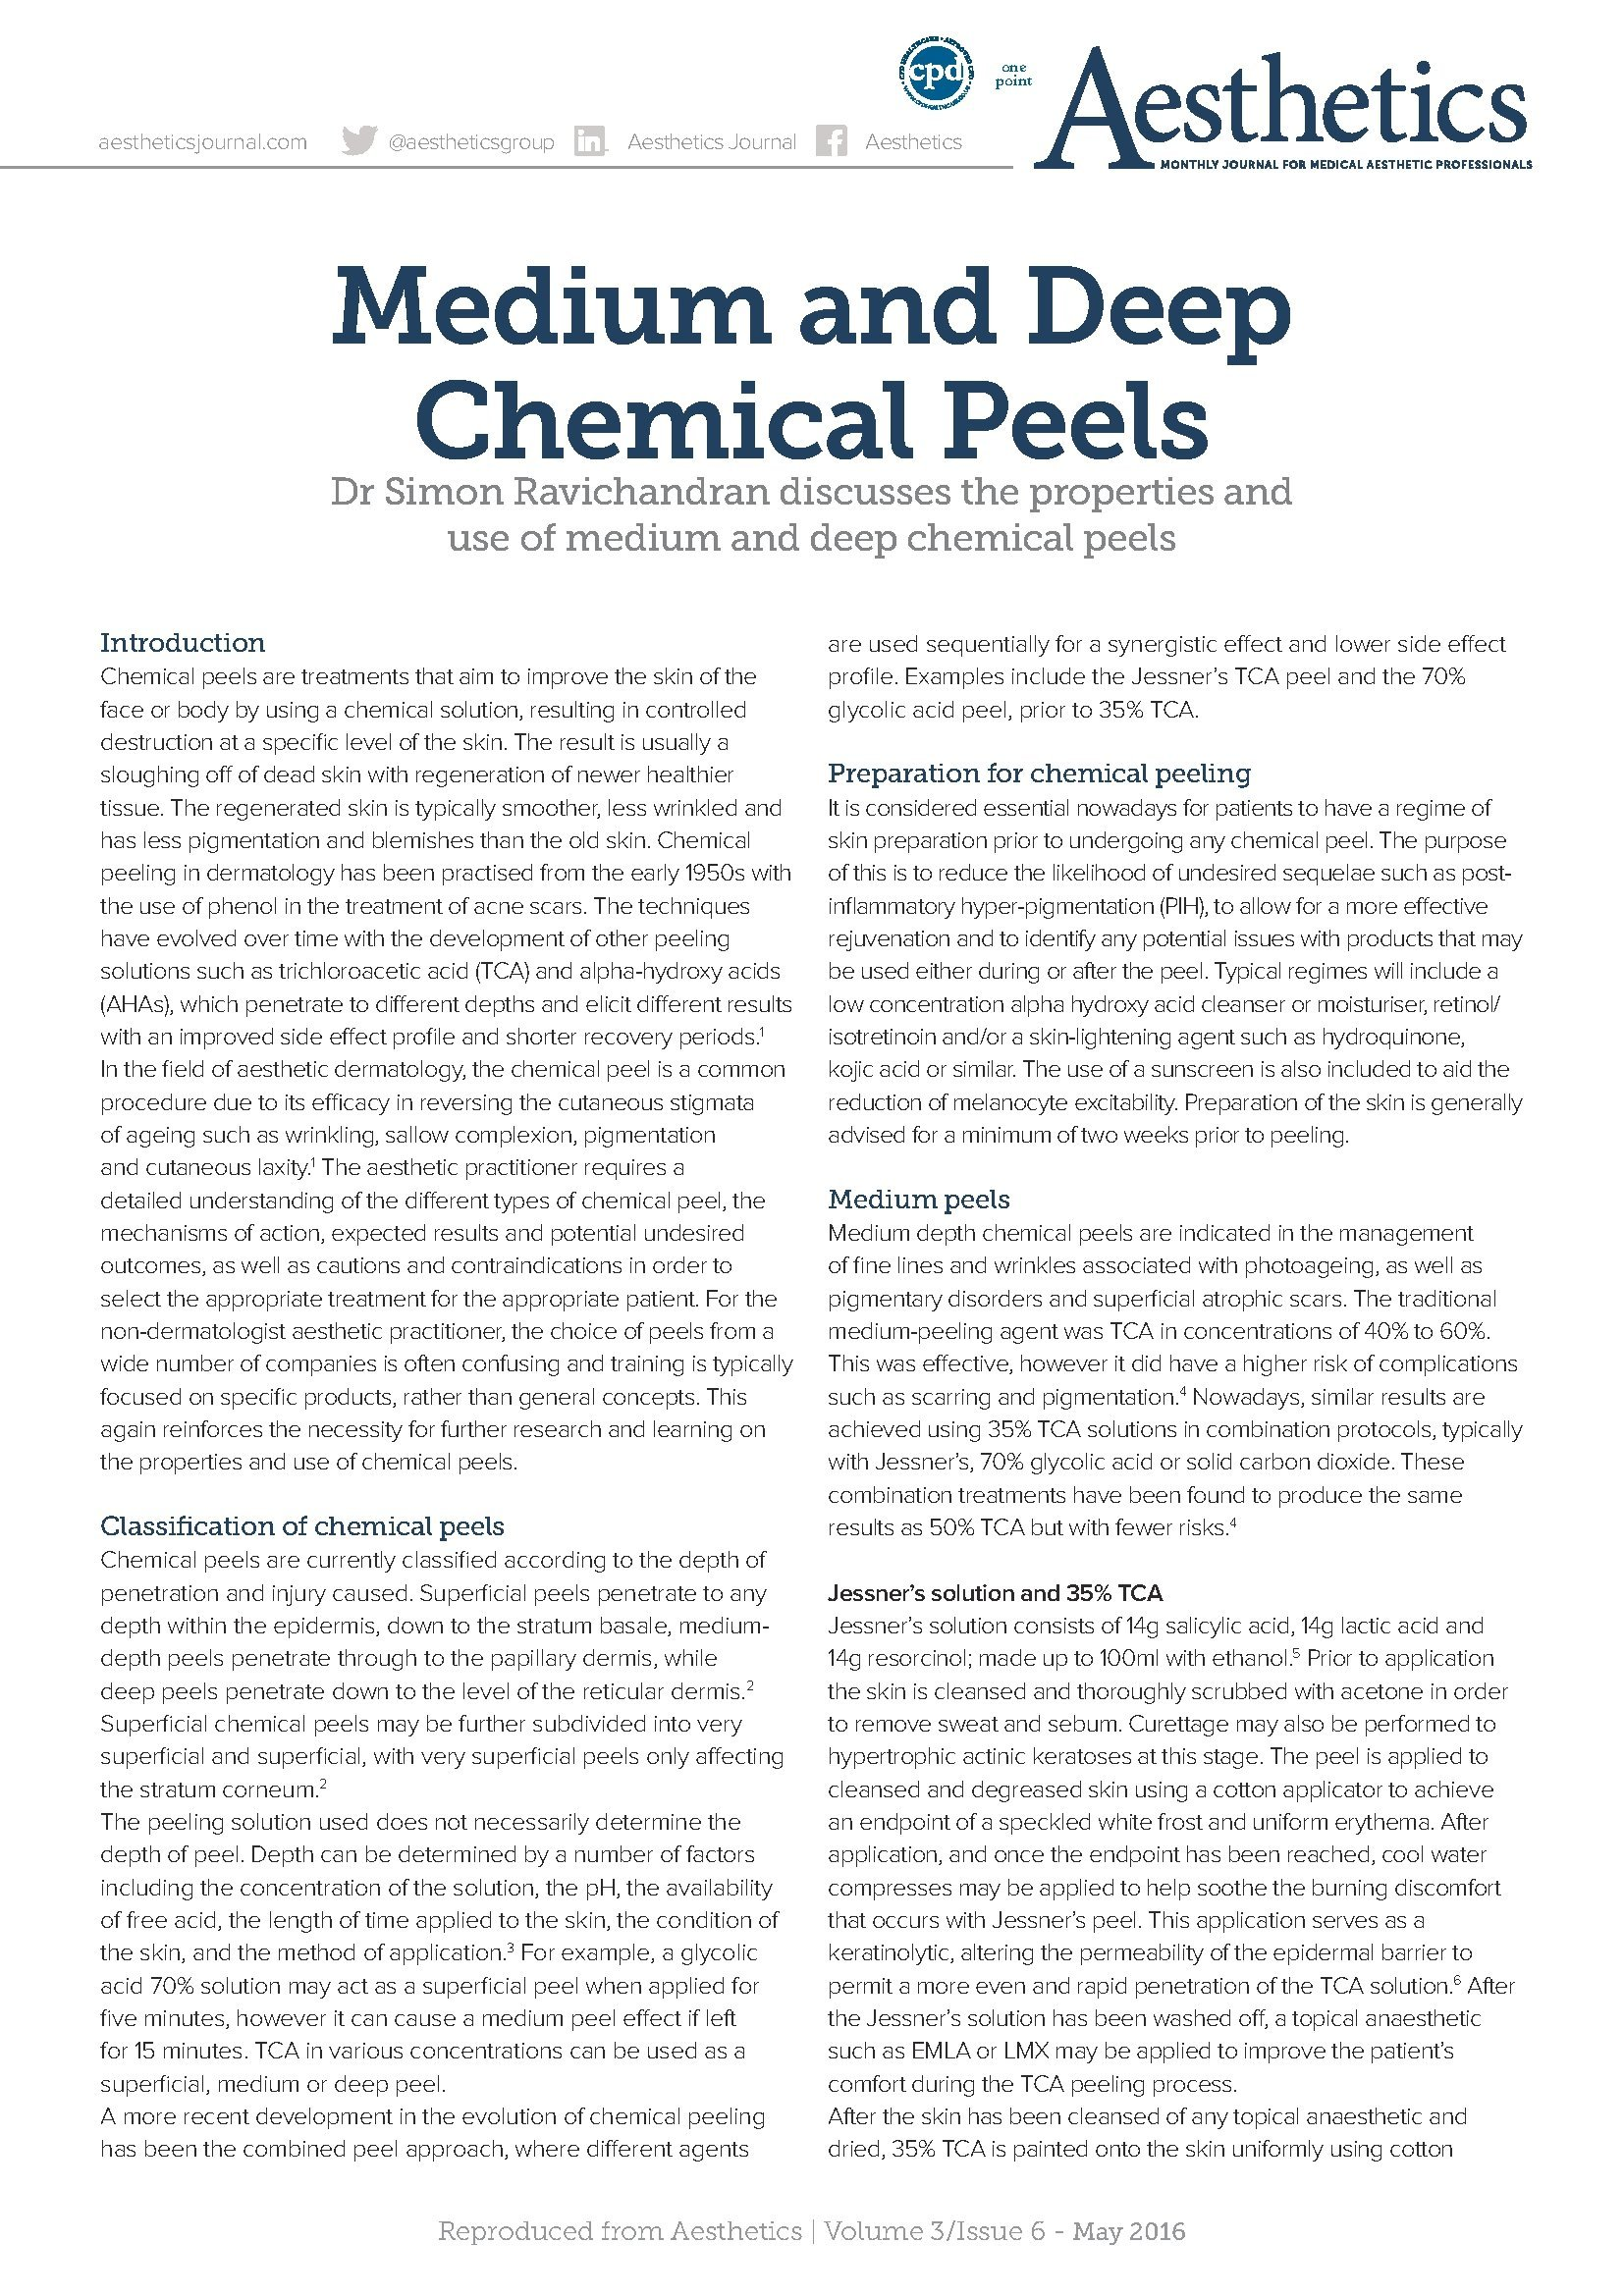 Clinetix Director Dr Simon Ravichandran in Aesthetic Journal discussing the properties of Medium and Deep Chemical Peels